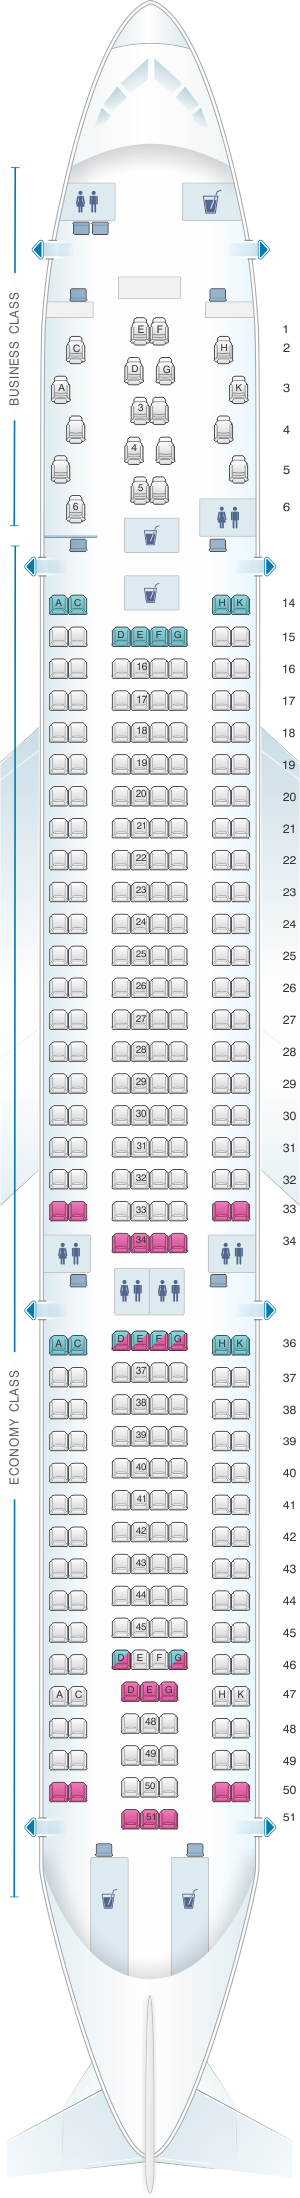 Seat map for airberlin Airbus A330 200 Config.1